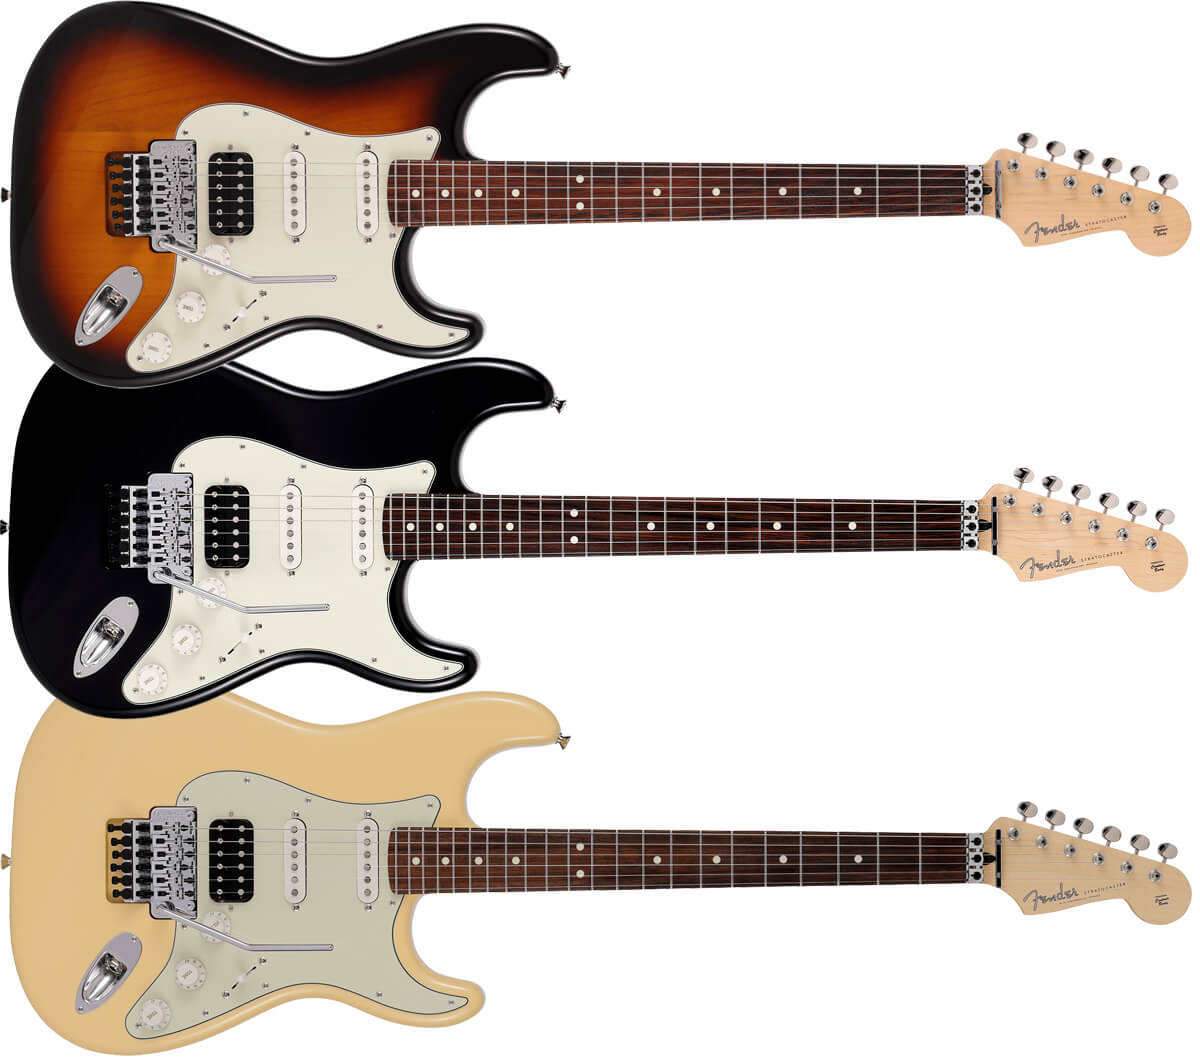 Fender Made in Japan Limited Stratocaster with Floyd Rose